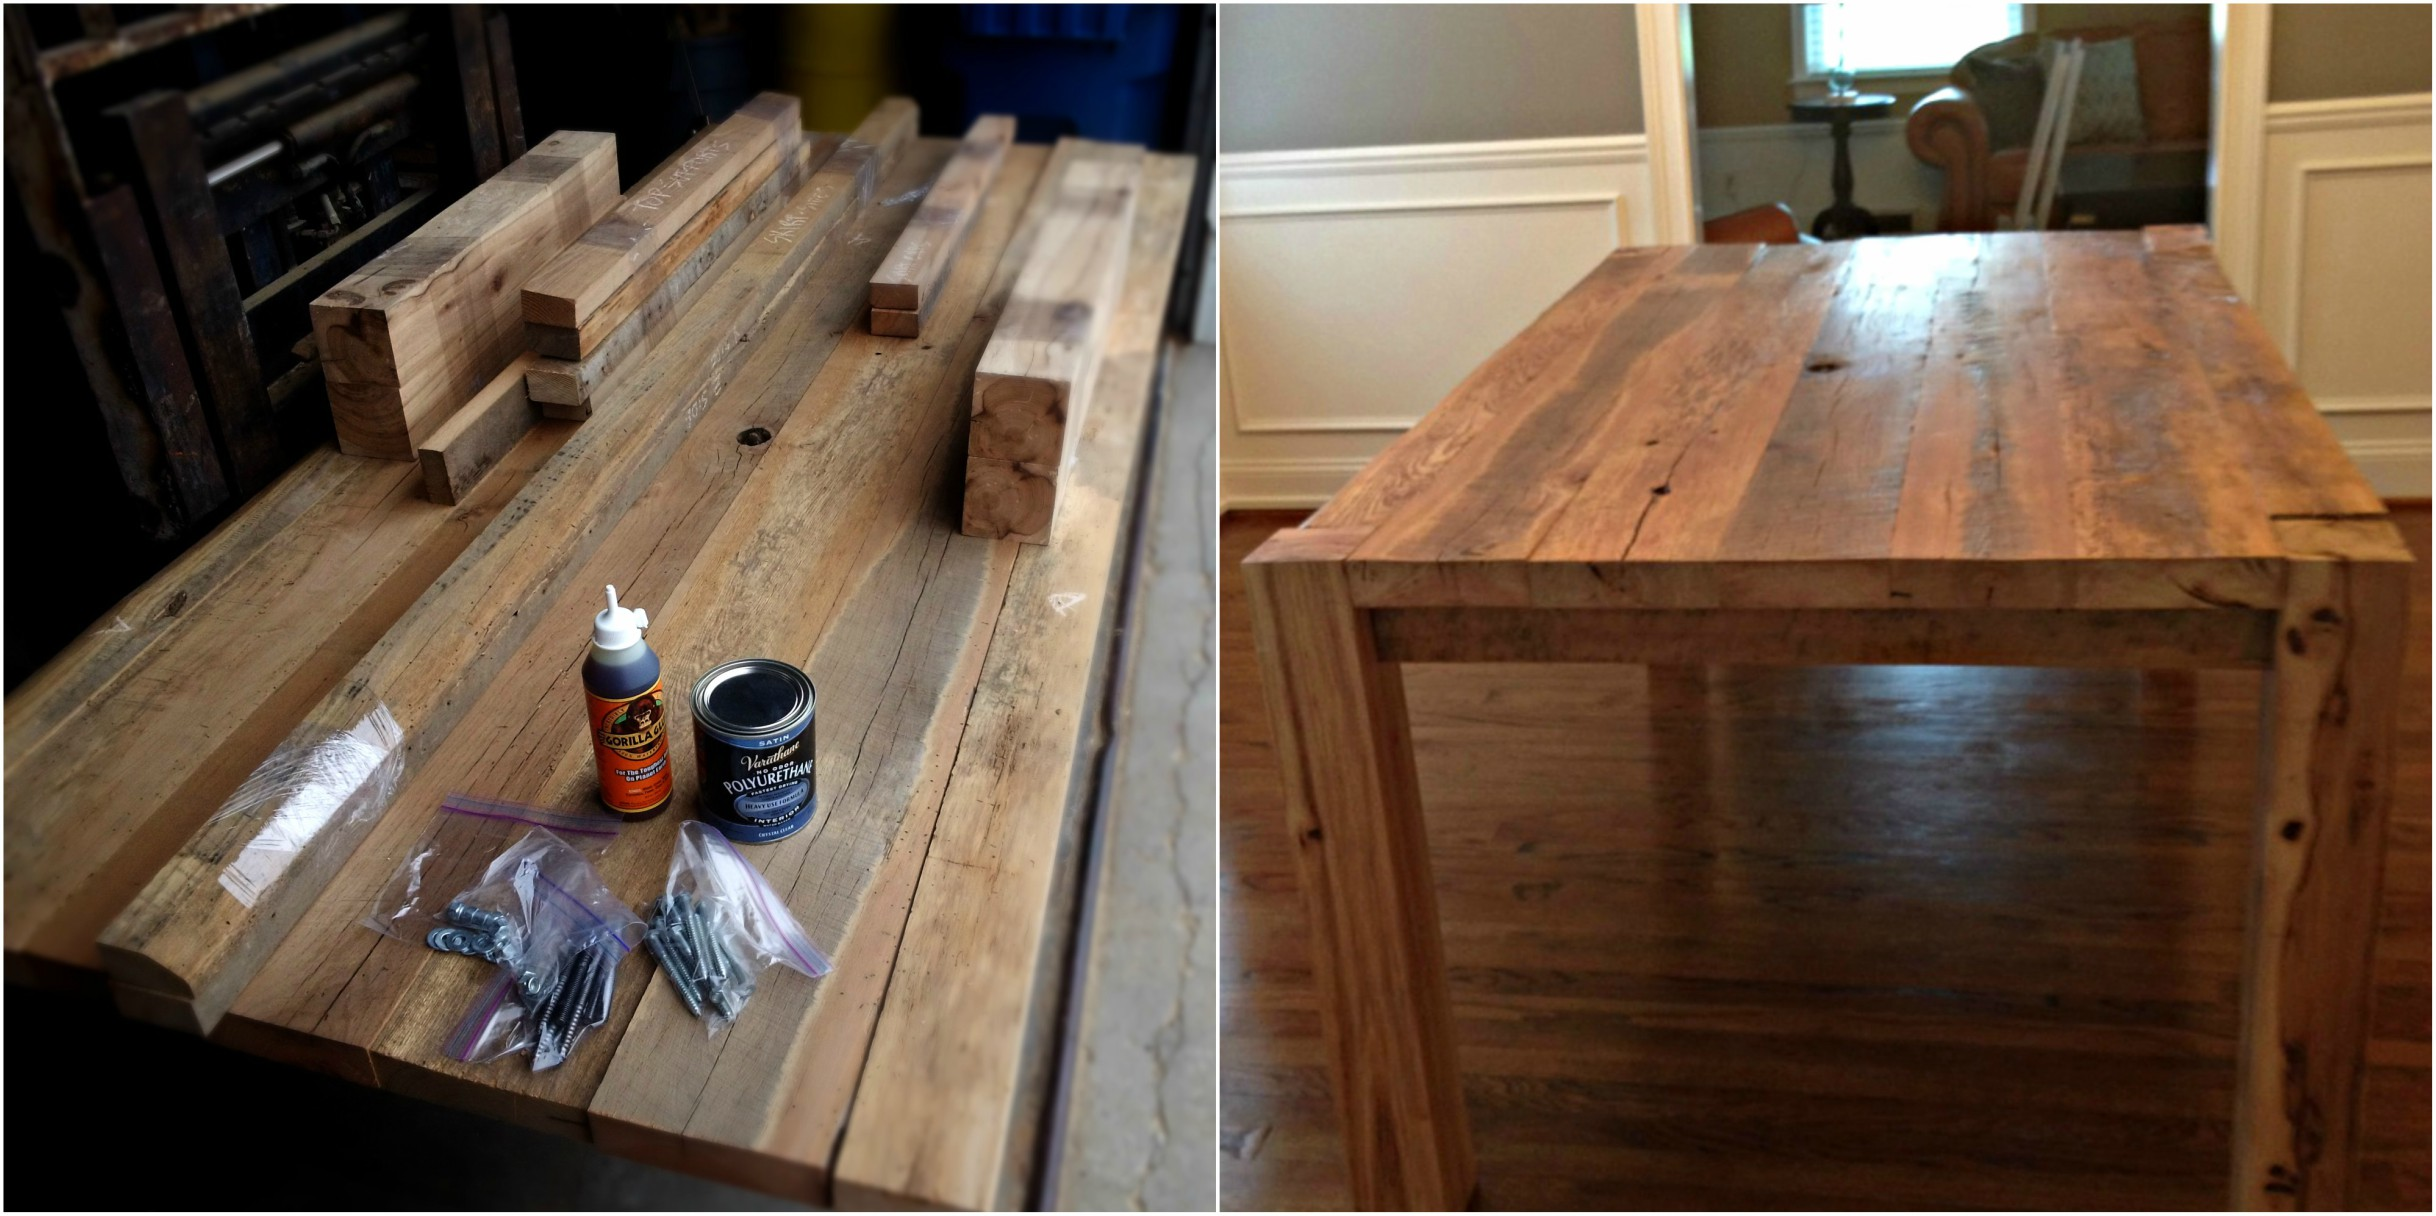 jimmy-barnwood-from-kit-to-table-diy-kits.jpg